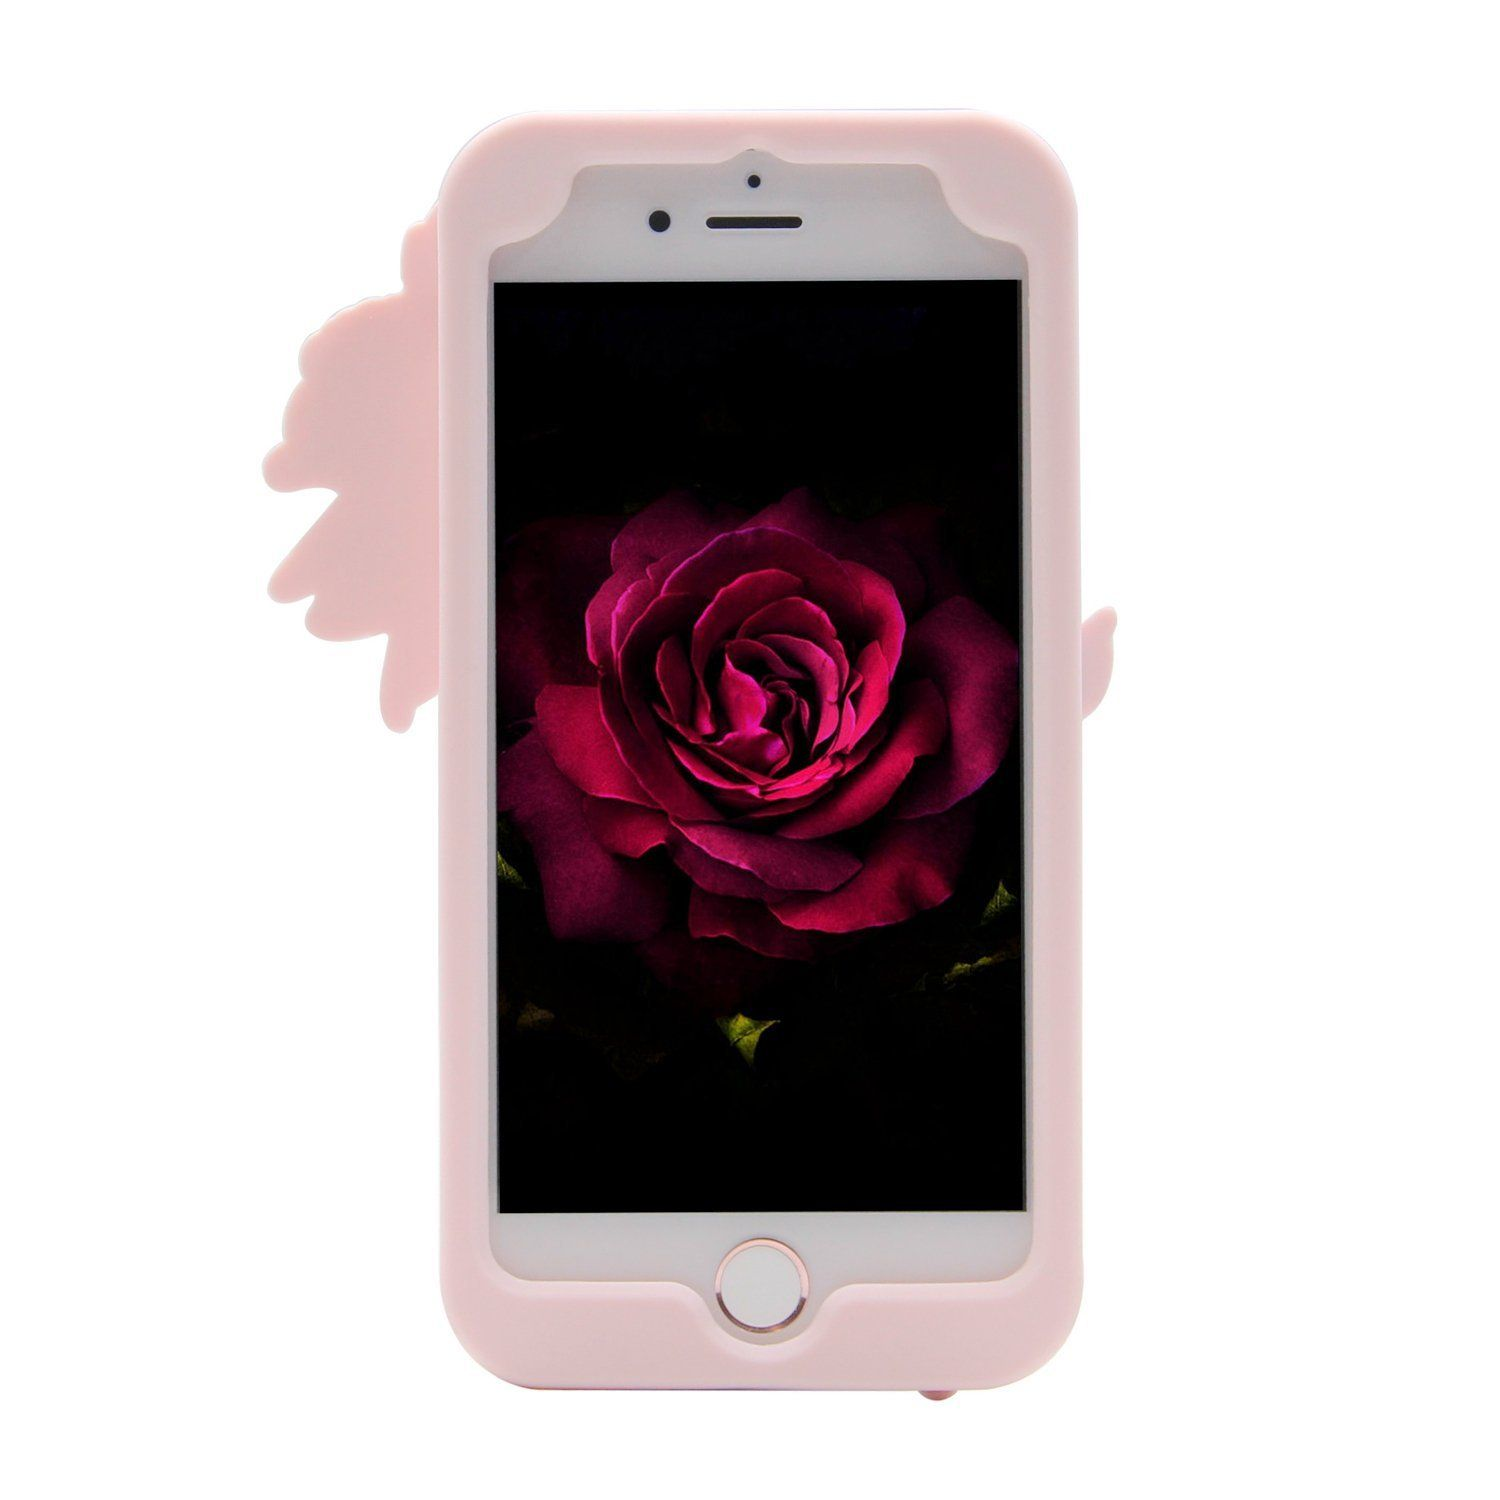 Cat Toys For Kids iPhone 7 Plus Case MC Fashion Cute 3D Red Rose